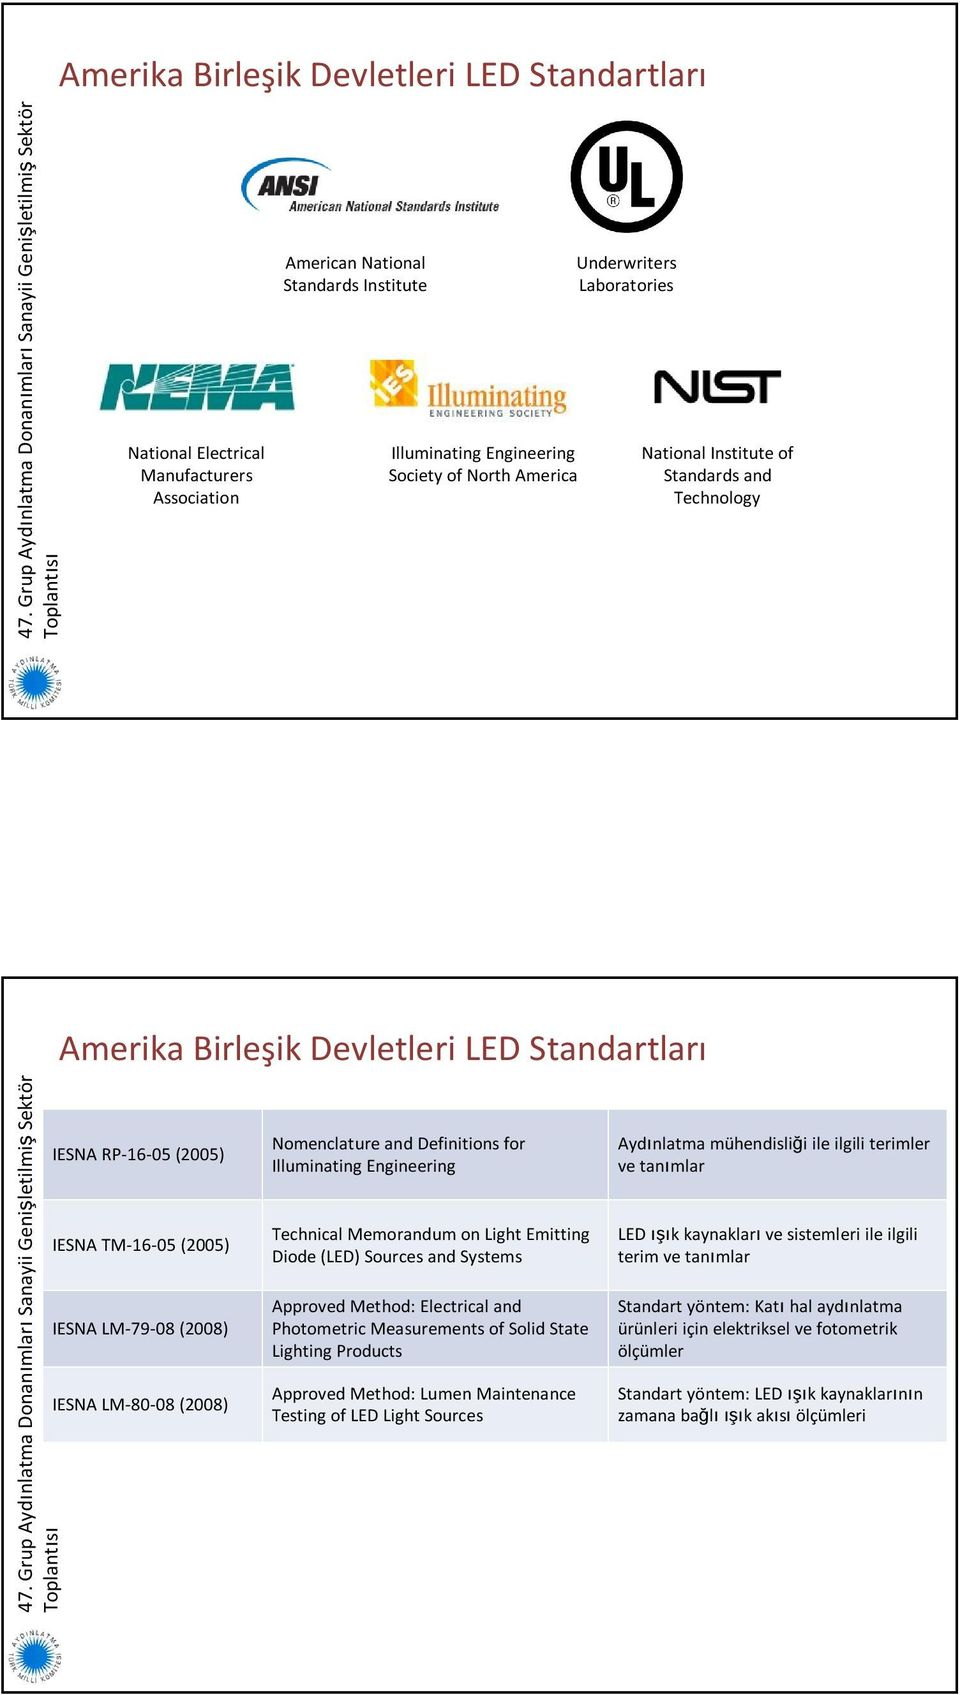 Nomenclature and Definitions for Illuminating Engineering Technical Memorandum on Light Emitting Diode (LED) Sources and Systems Approved Method: Electrical and Photometric Measurements of Solid